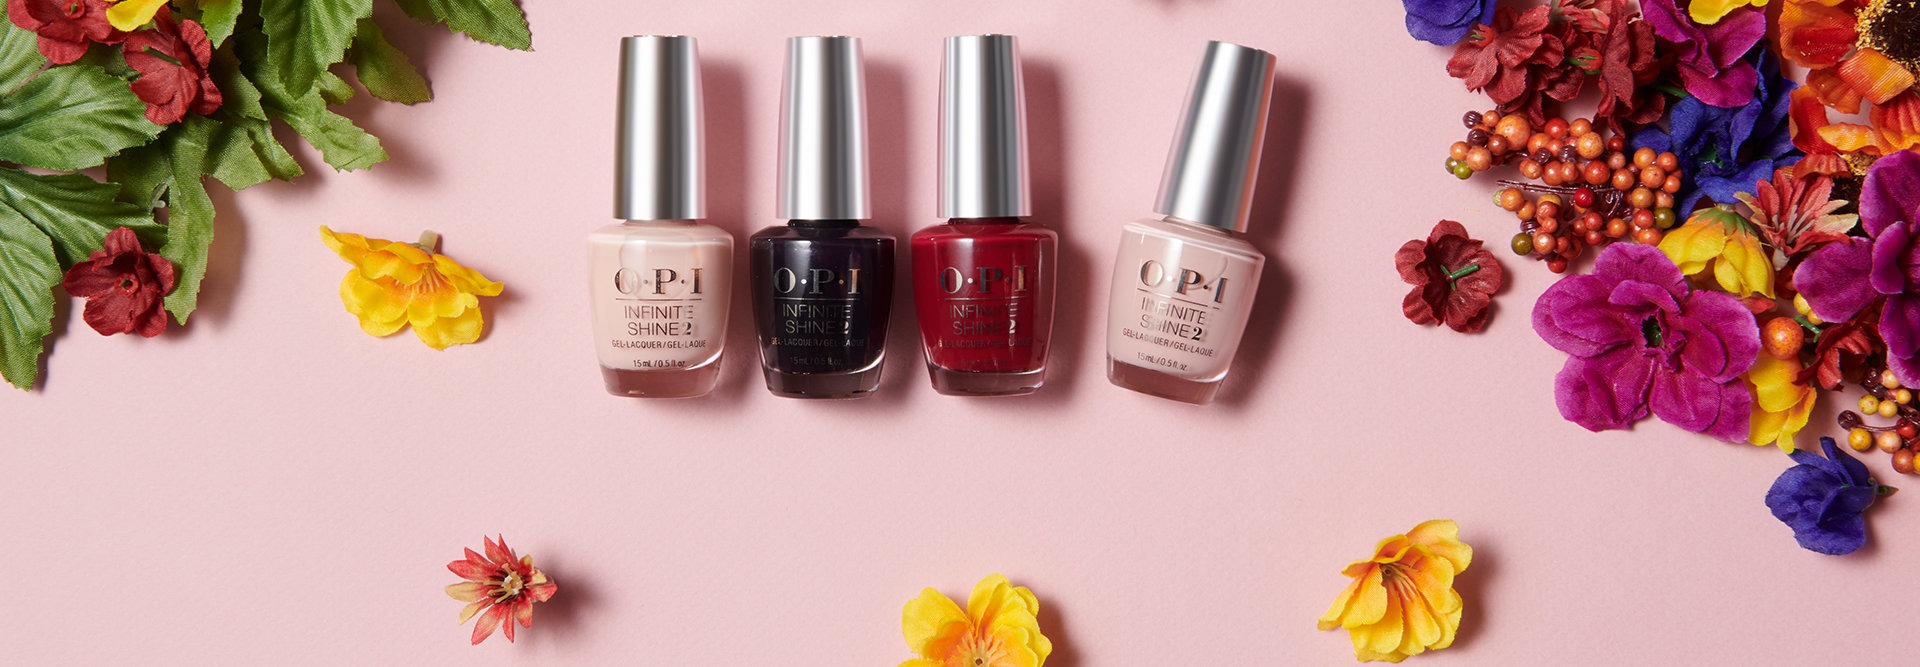 OPI wedding nail polish shades